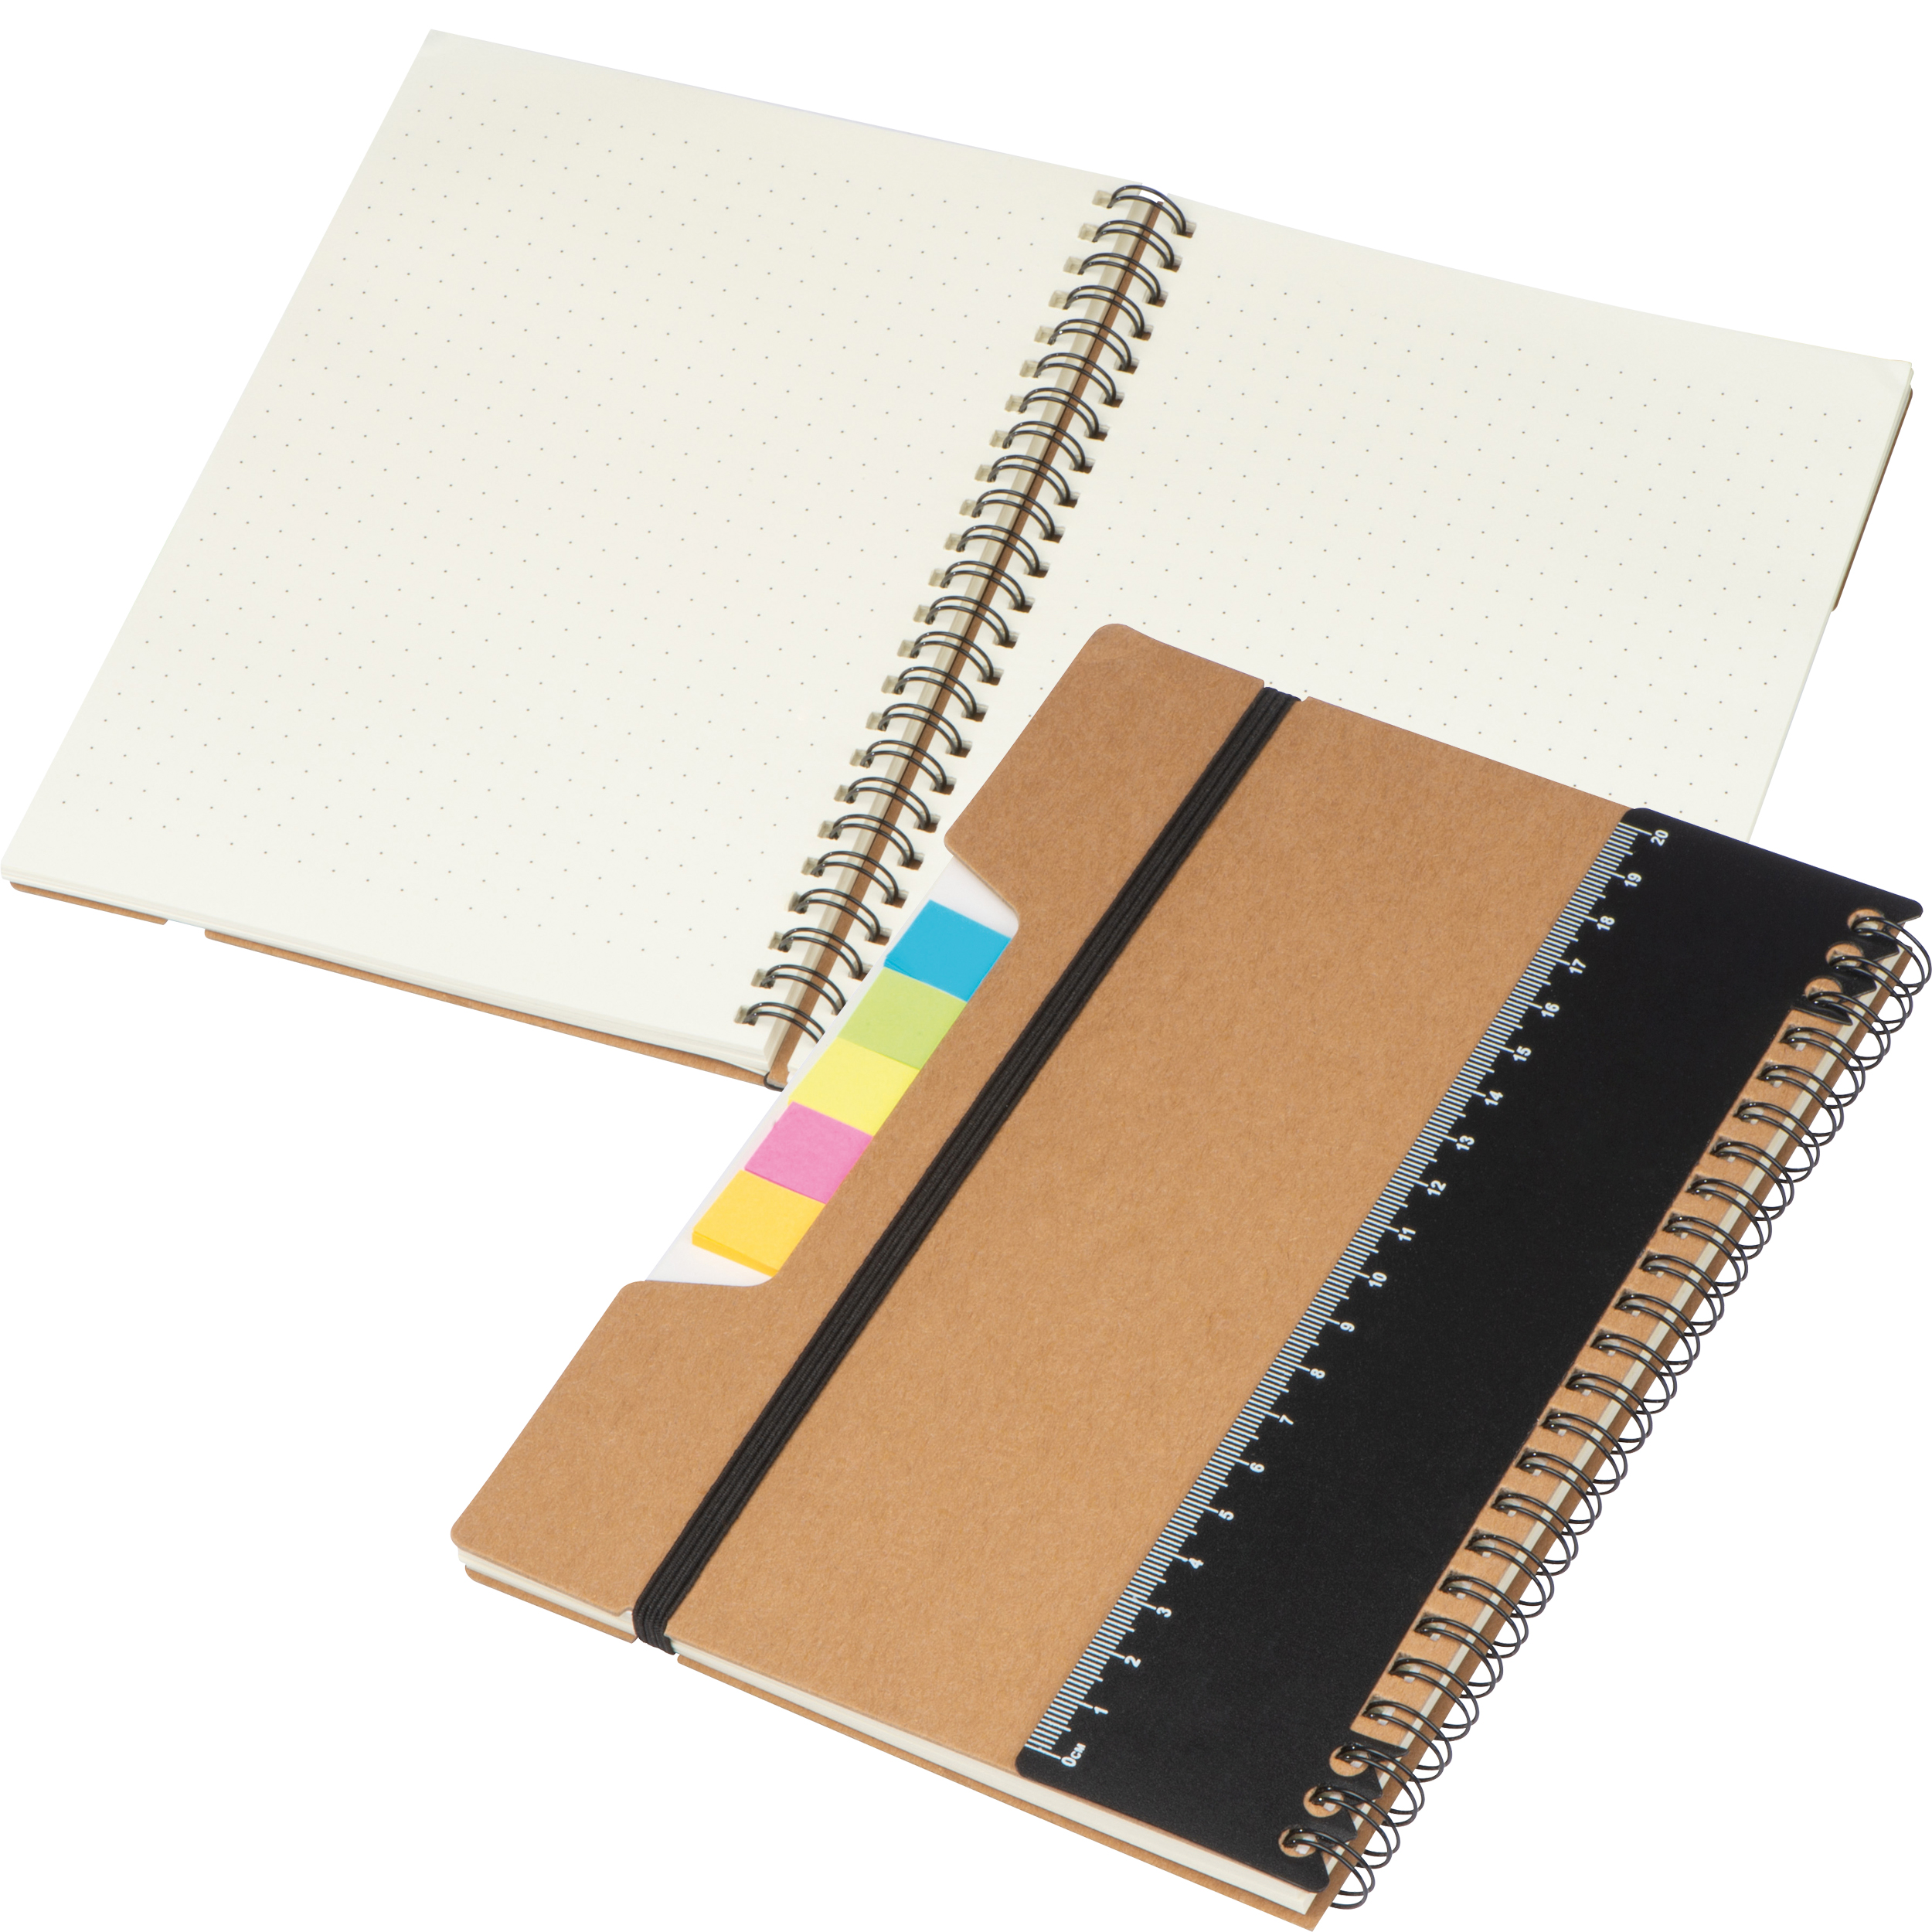 A5 Notebook with Ruler and sticky notes